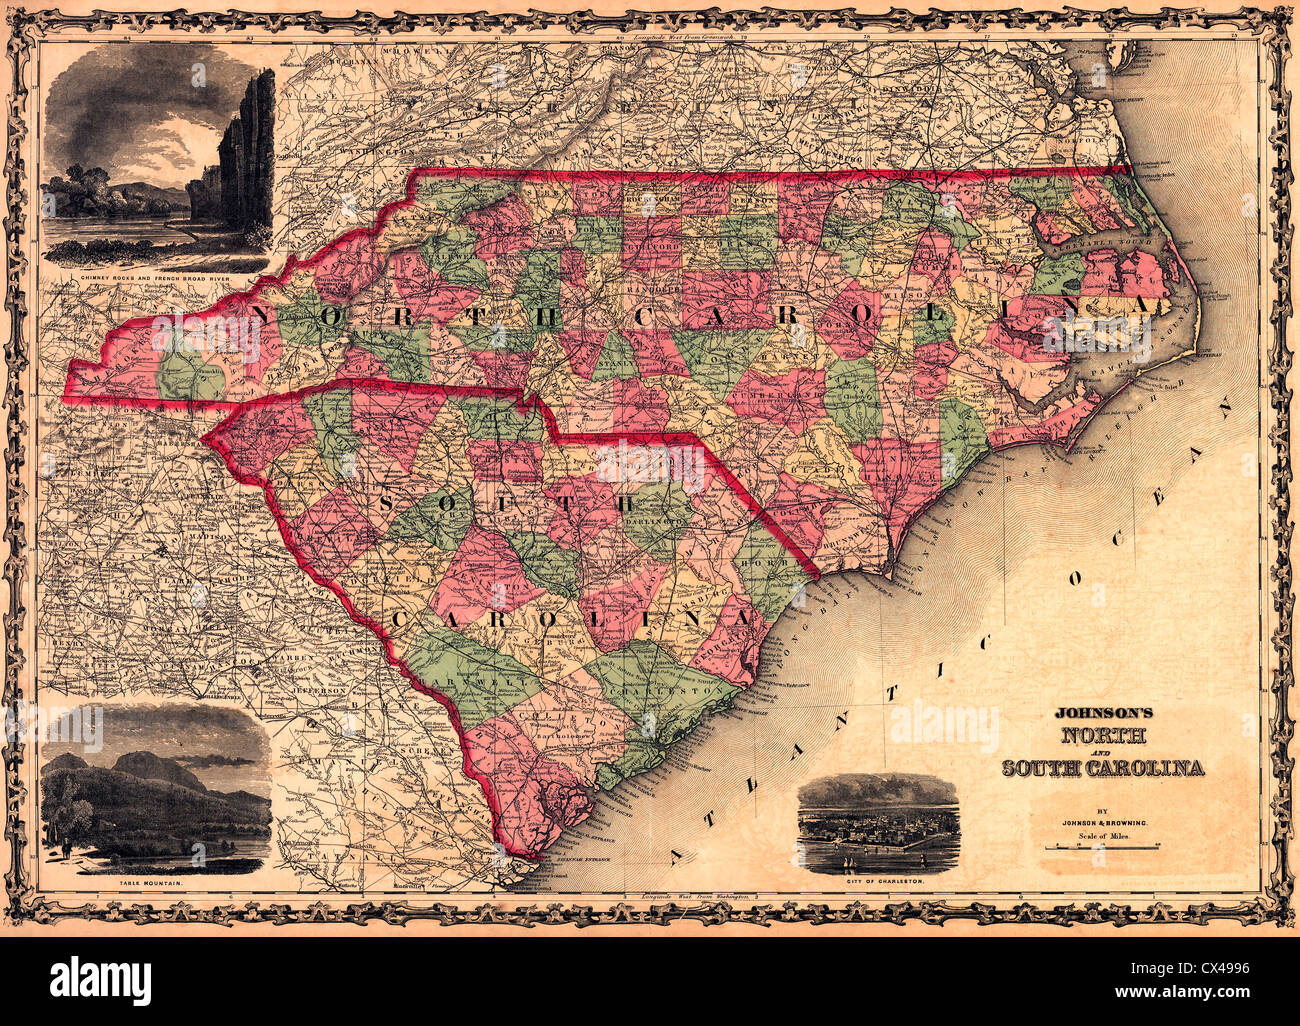 North South Carolina Map.Map Of North And South Carolina Usa 1861 Stock Photo 50496914 Alamy